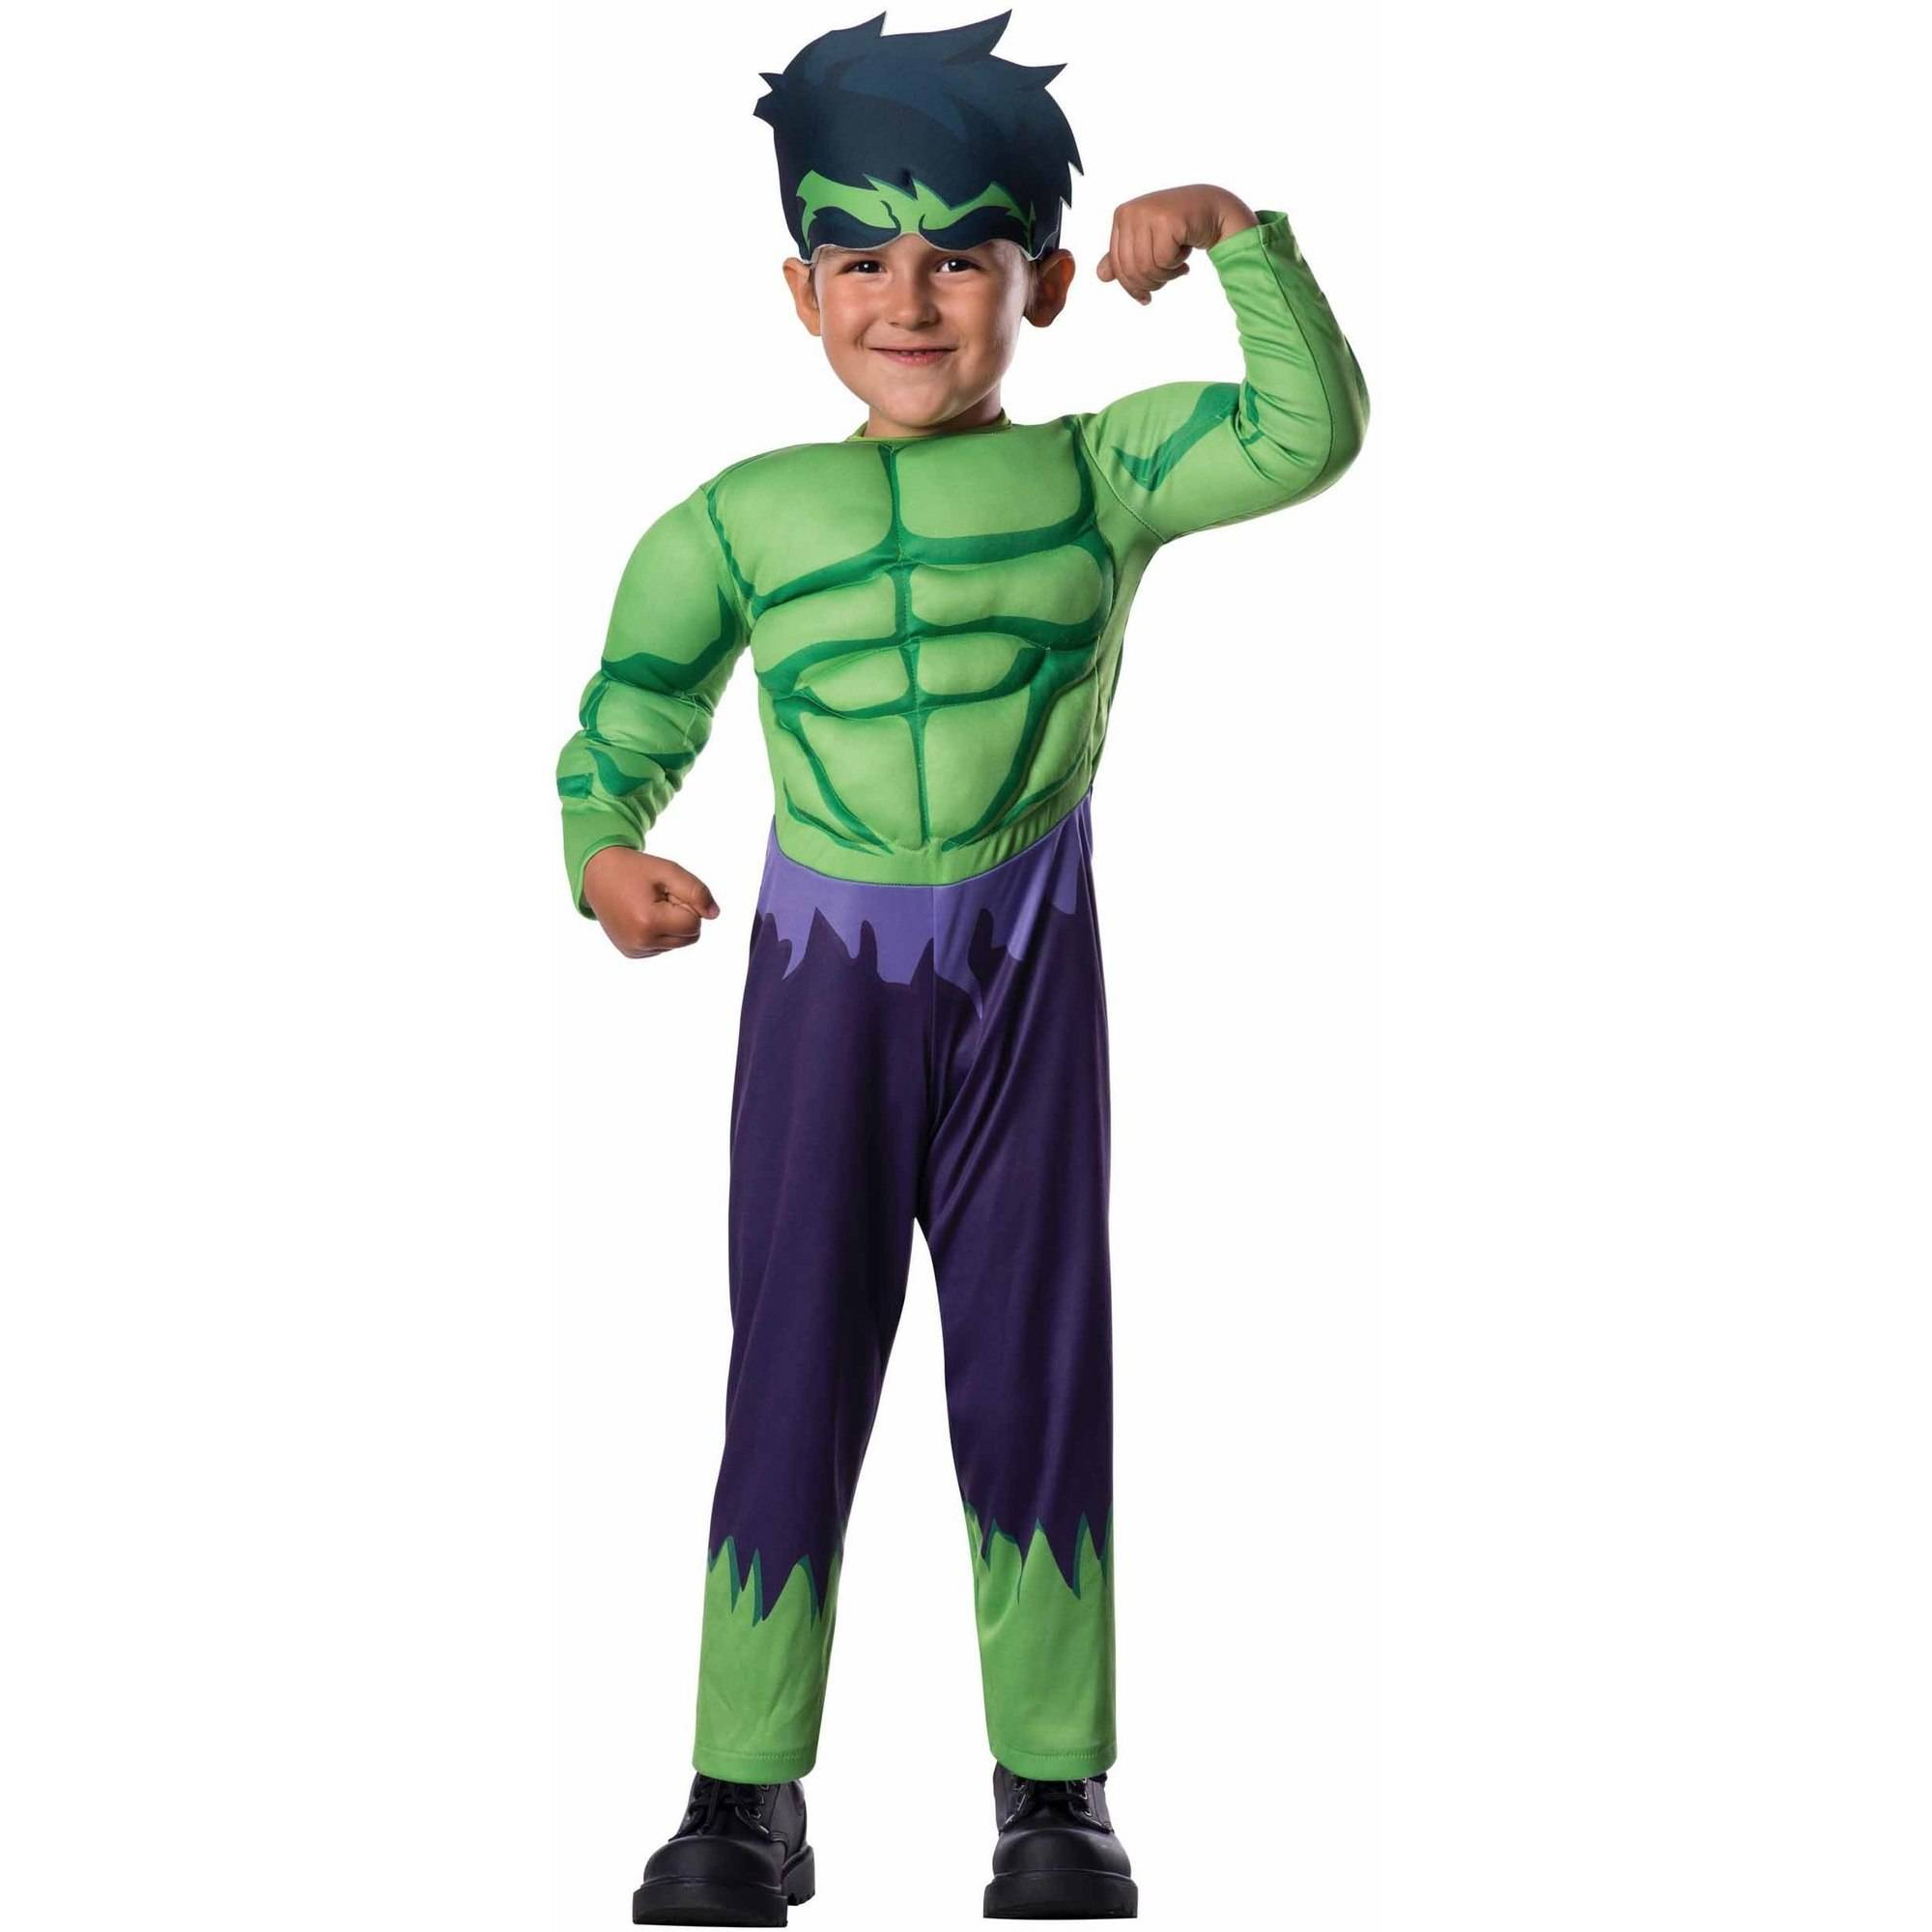 Hulk Toddler's Costume, 2T